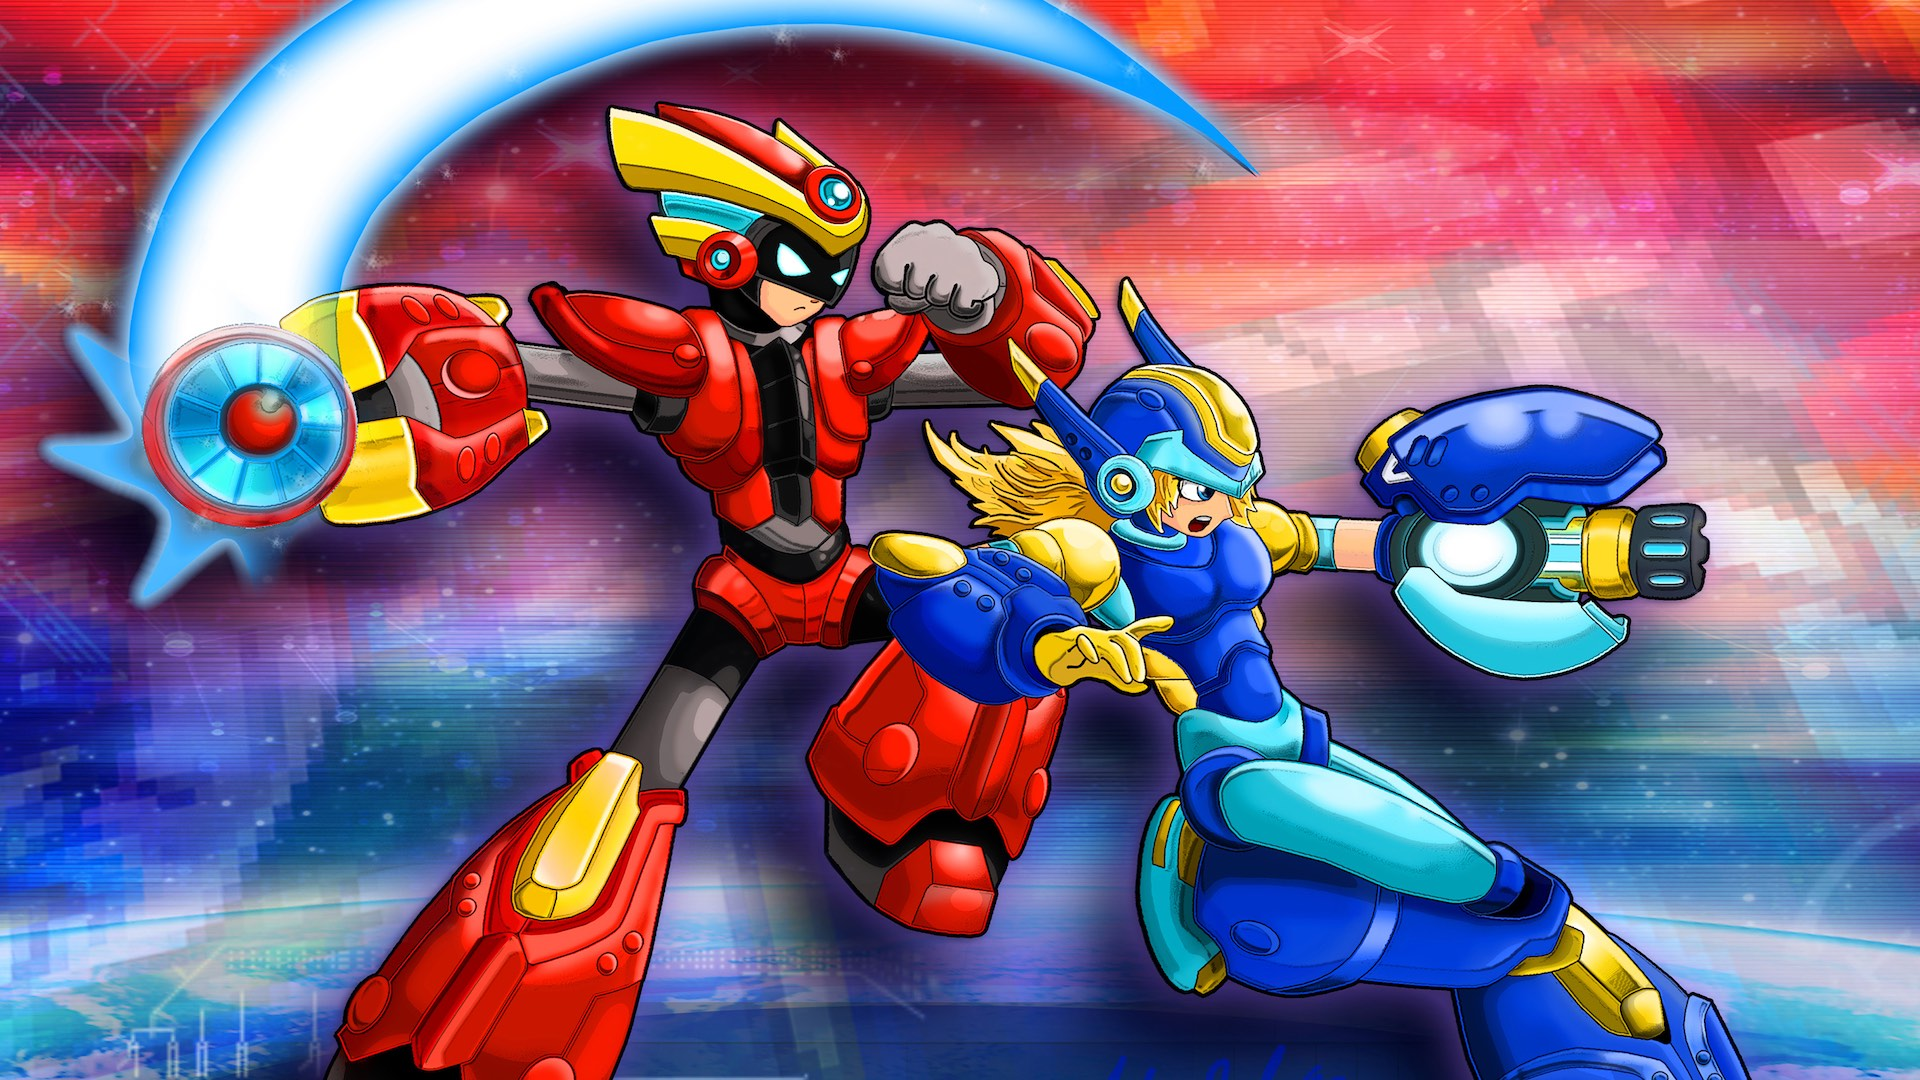 20XX, matando as saudades de Mega Man X [Gameplay]